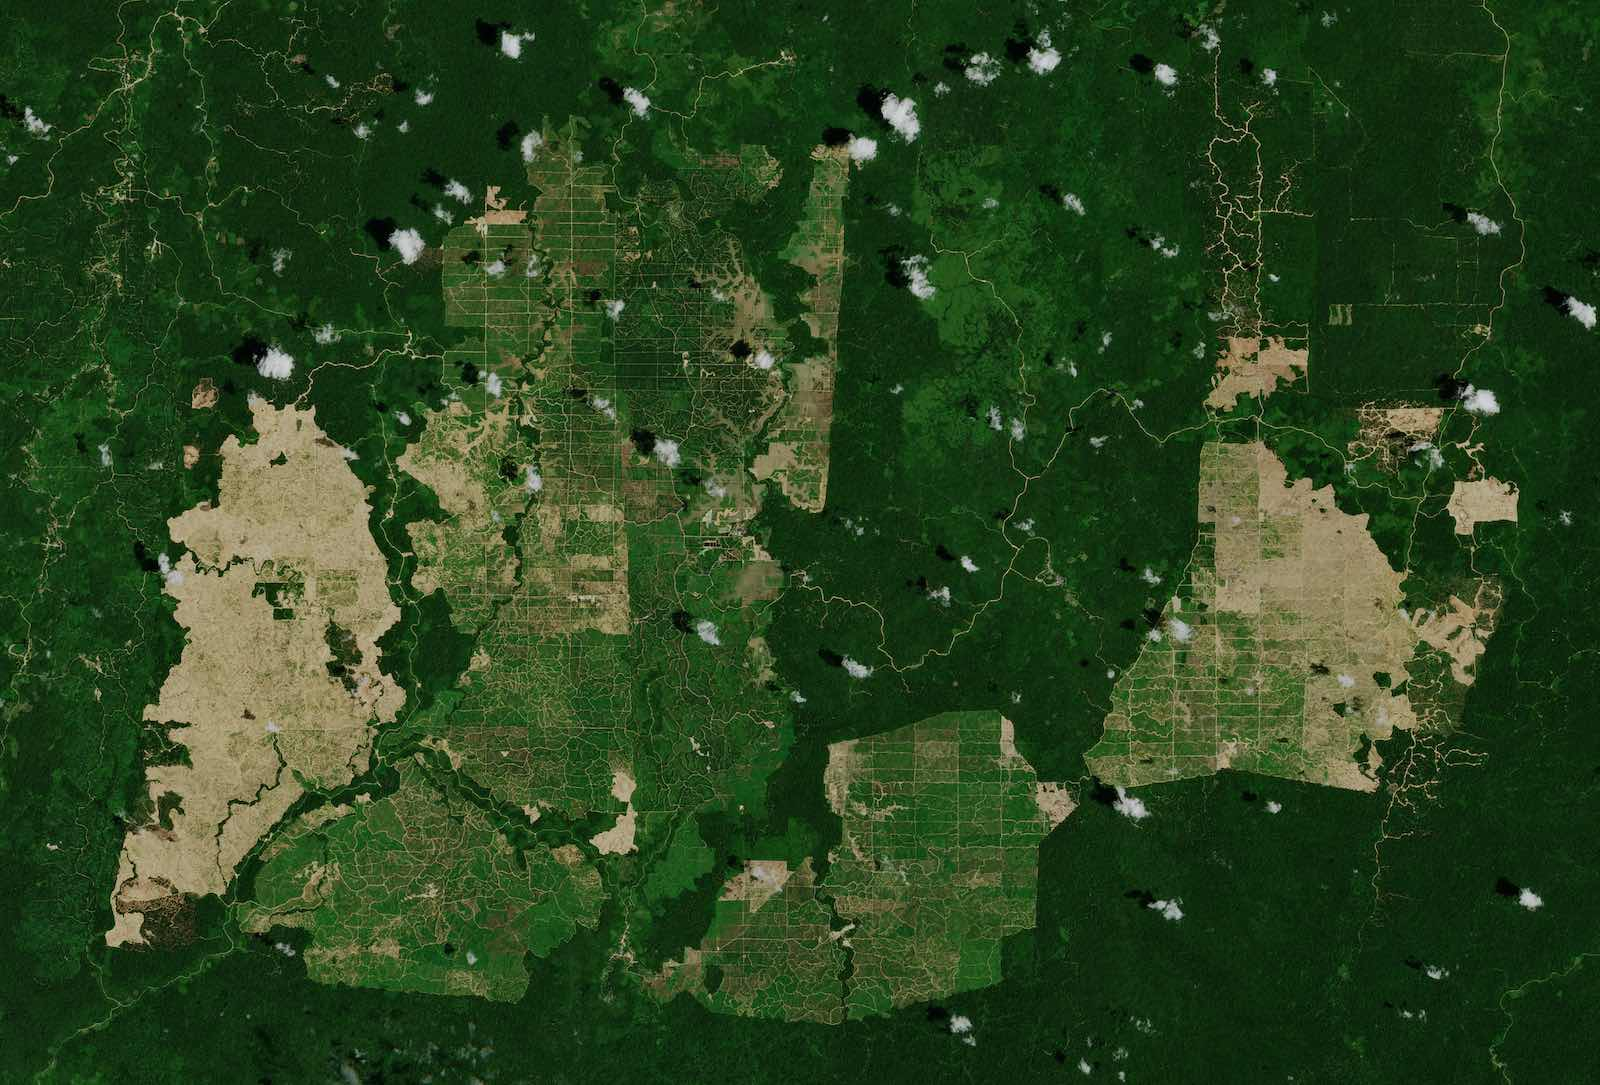 Palm oil plantations in East Kalimantan, Indonesia, seen from the Copernicus Sentinel-2 satellite (European Space Agency/Flickr)